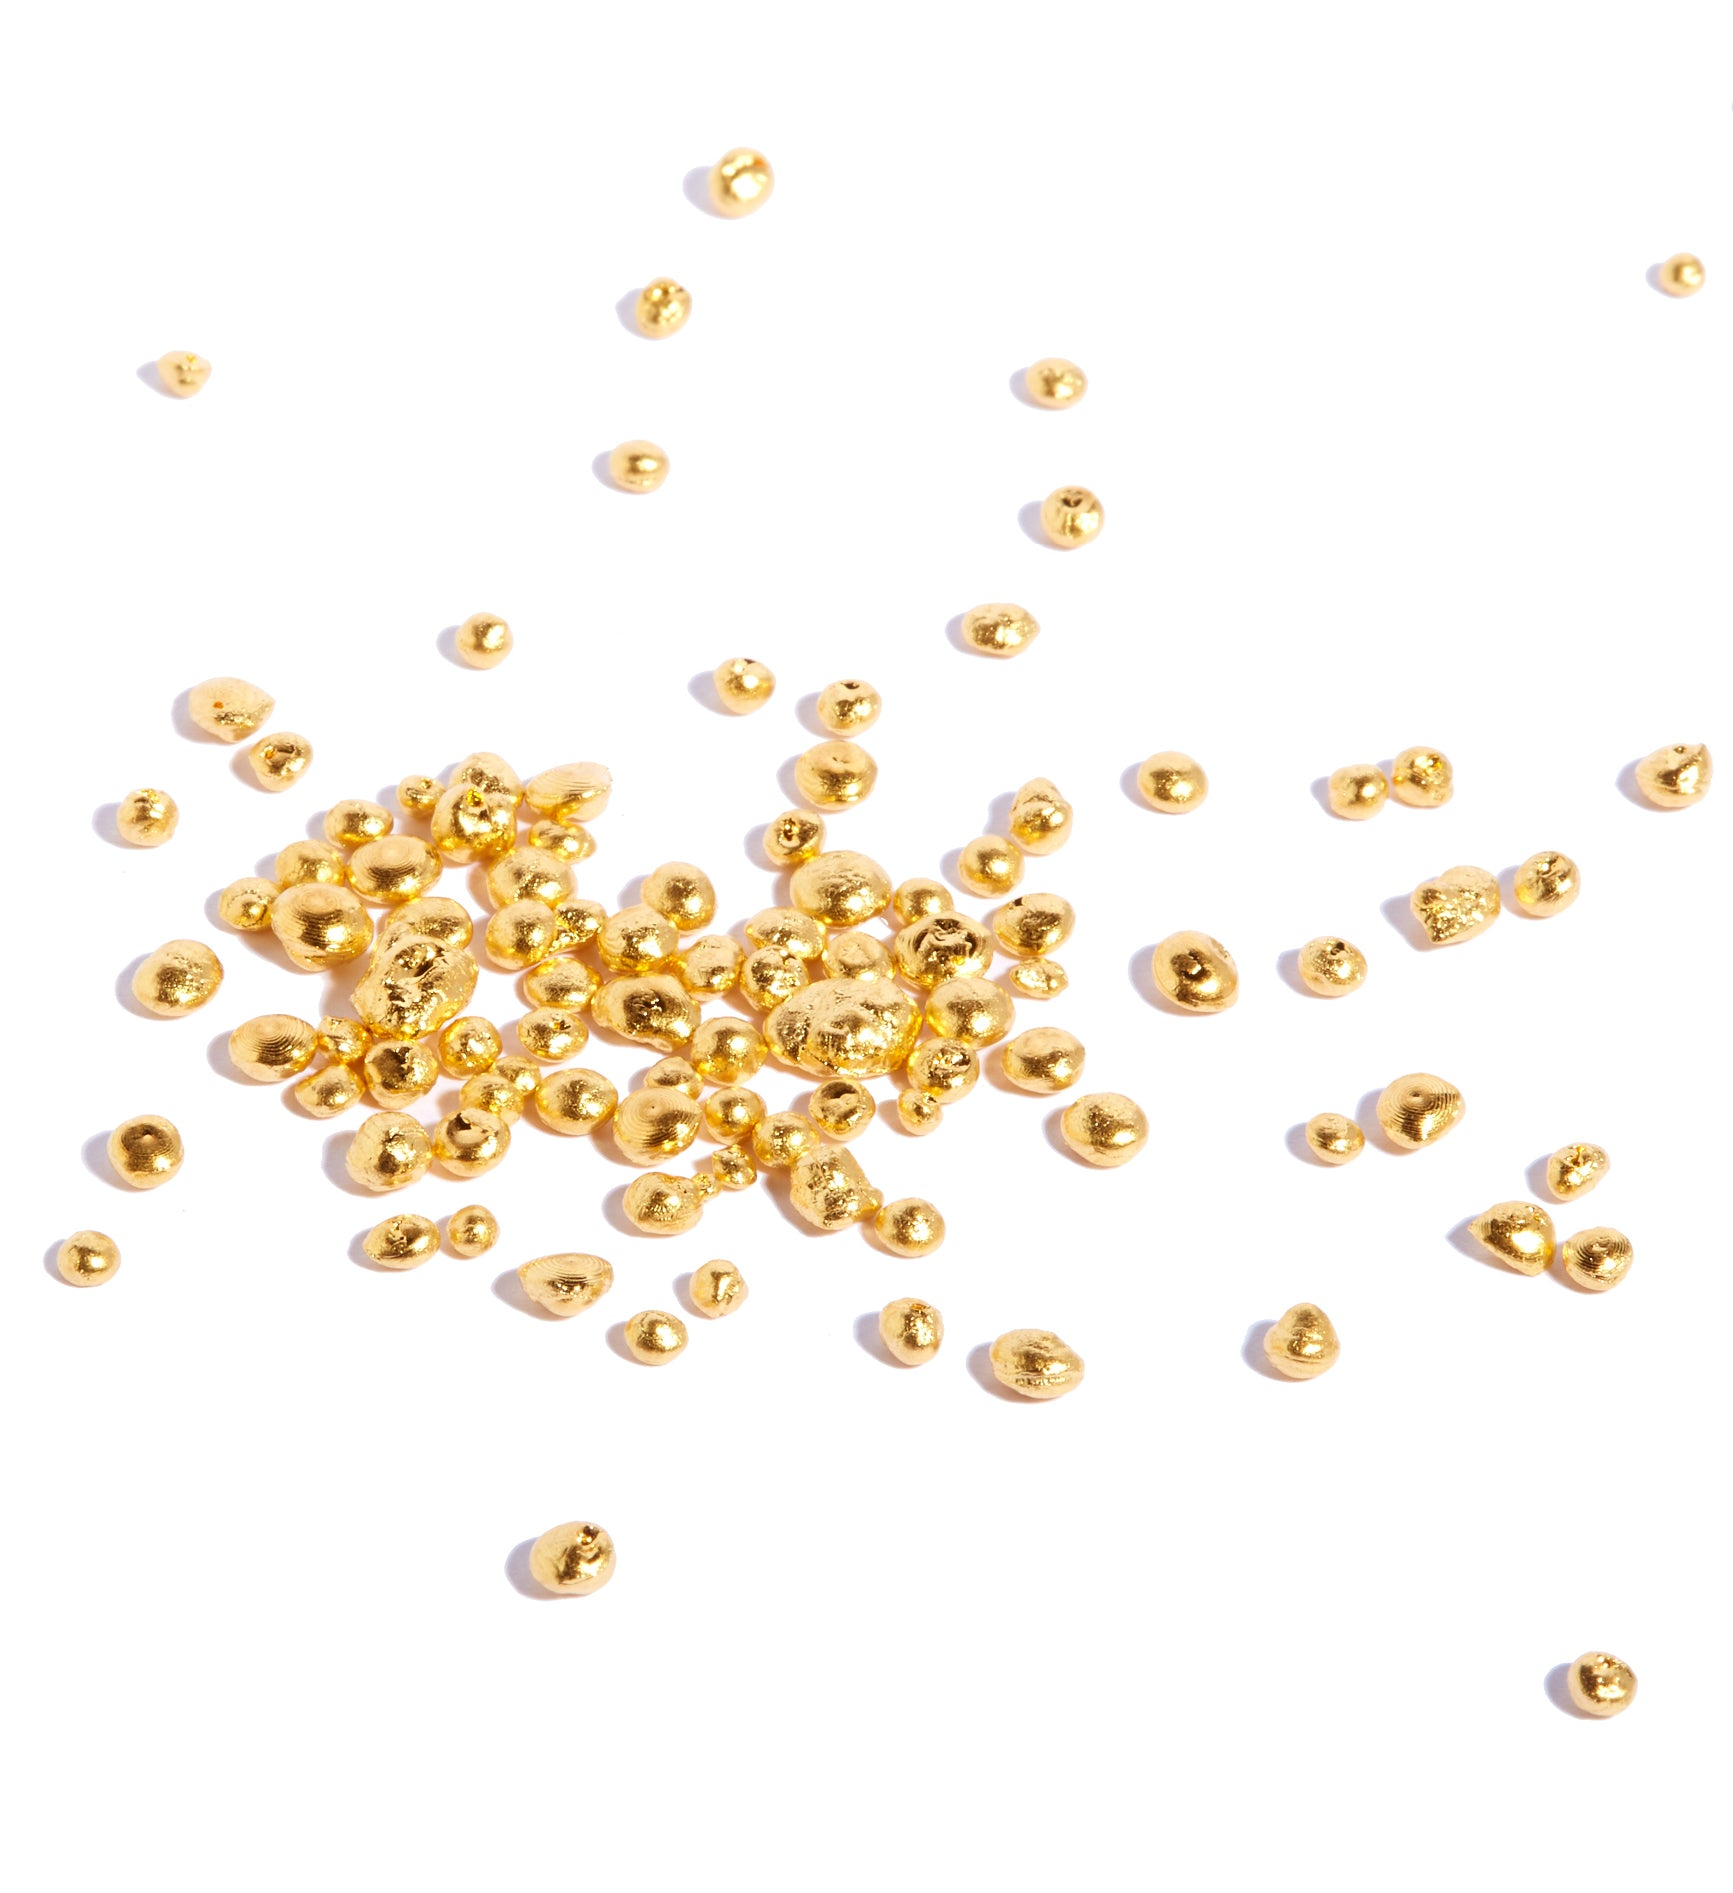 https://cdn.shopify.com/s/files/1/0571/9261/t/15/assets/gold%20granules-1509666856167.jpg?4240210152996326292